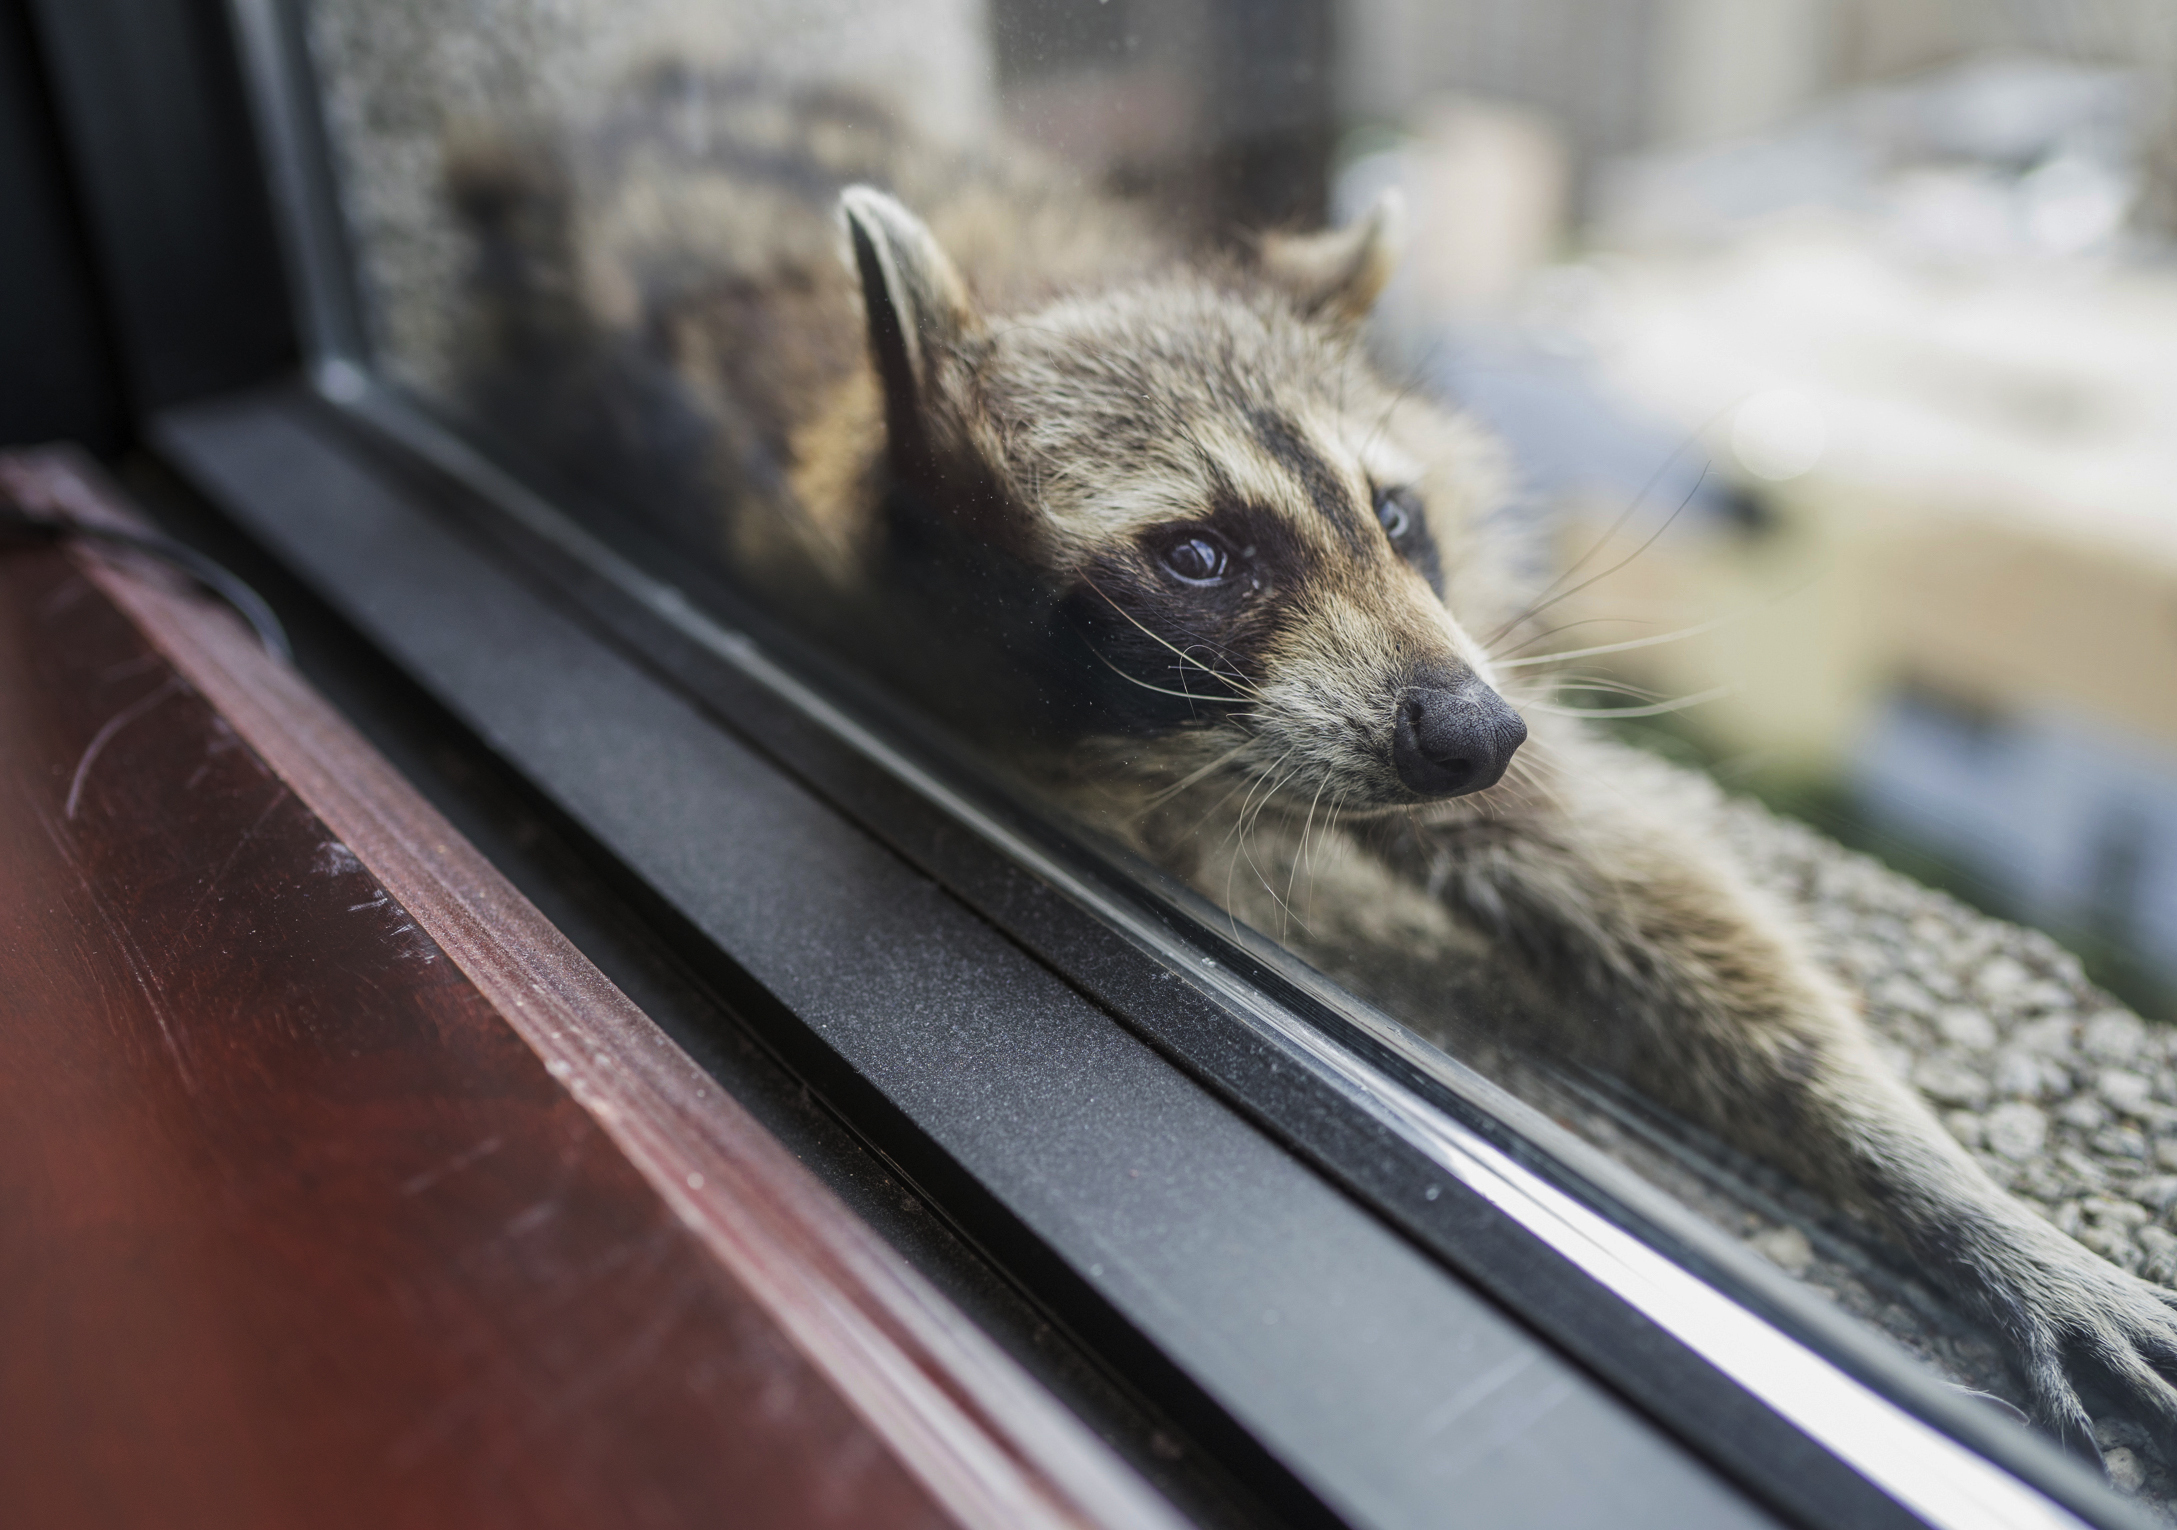 Internet falls in love with stranded raccoon attempting to scale building